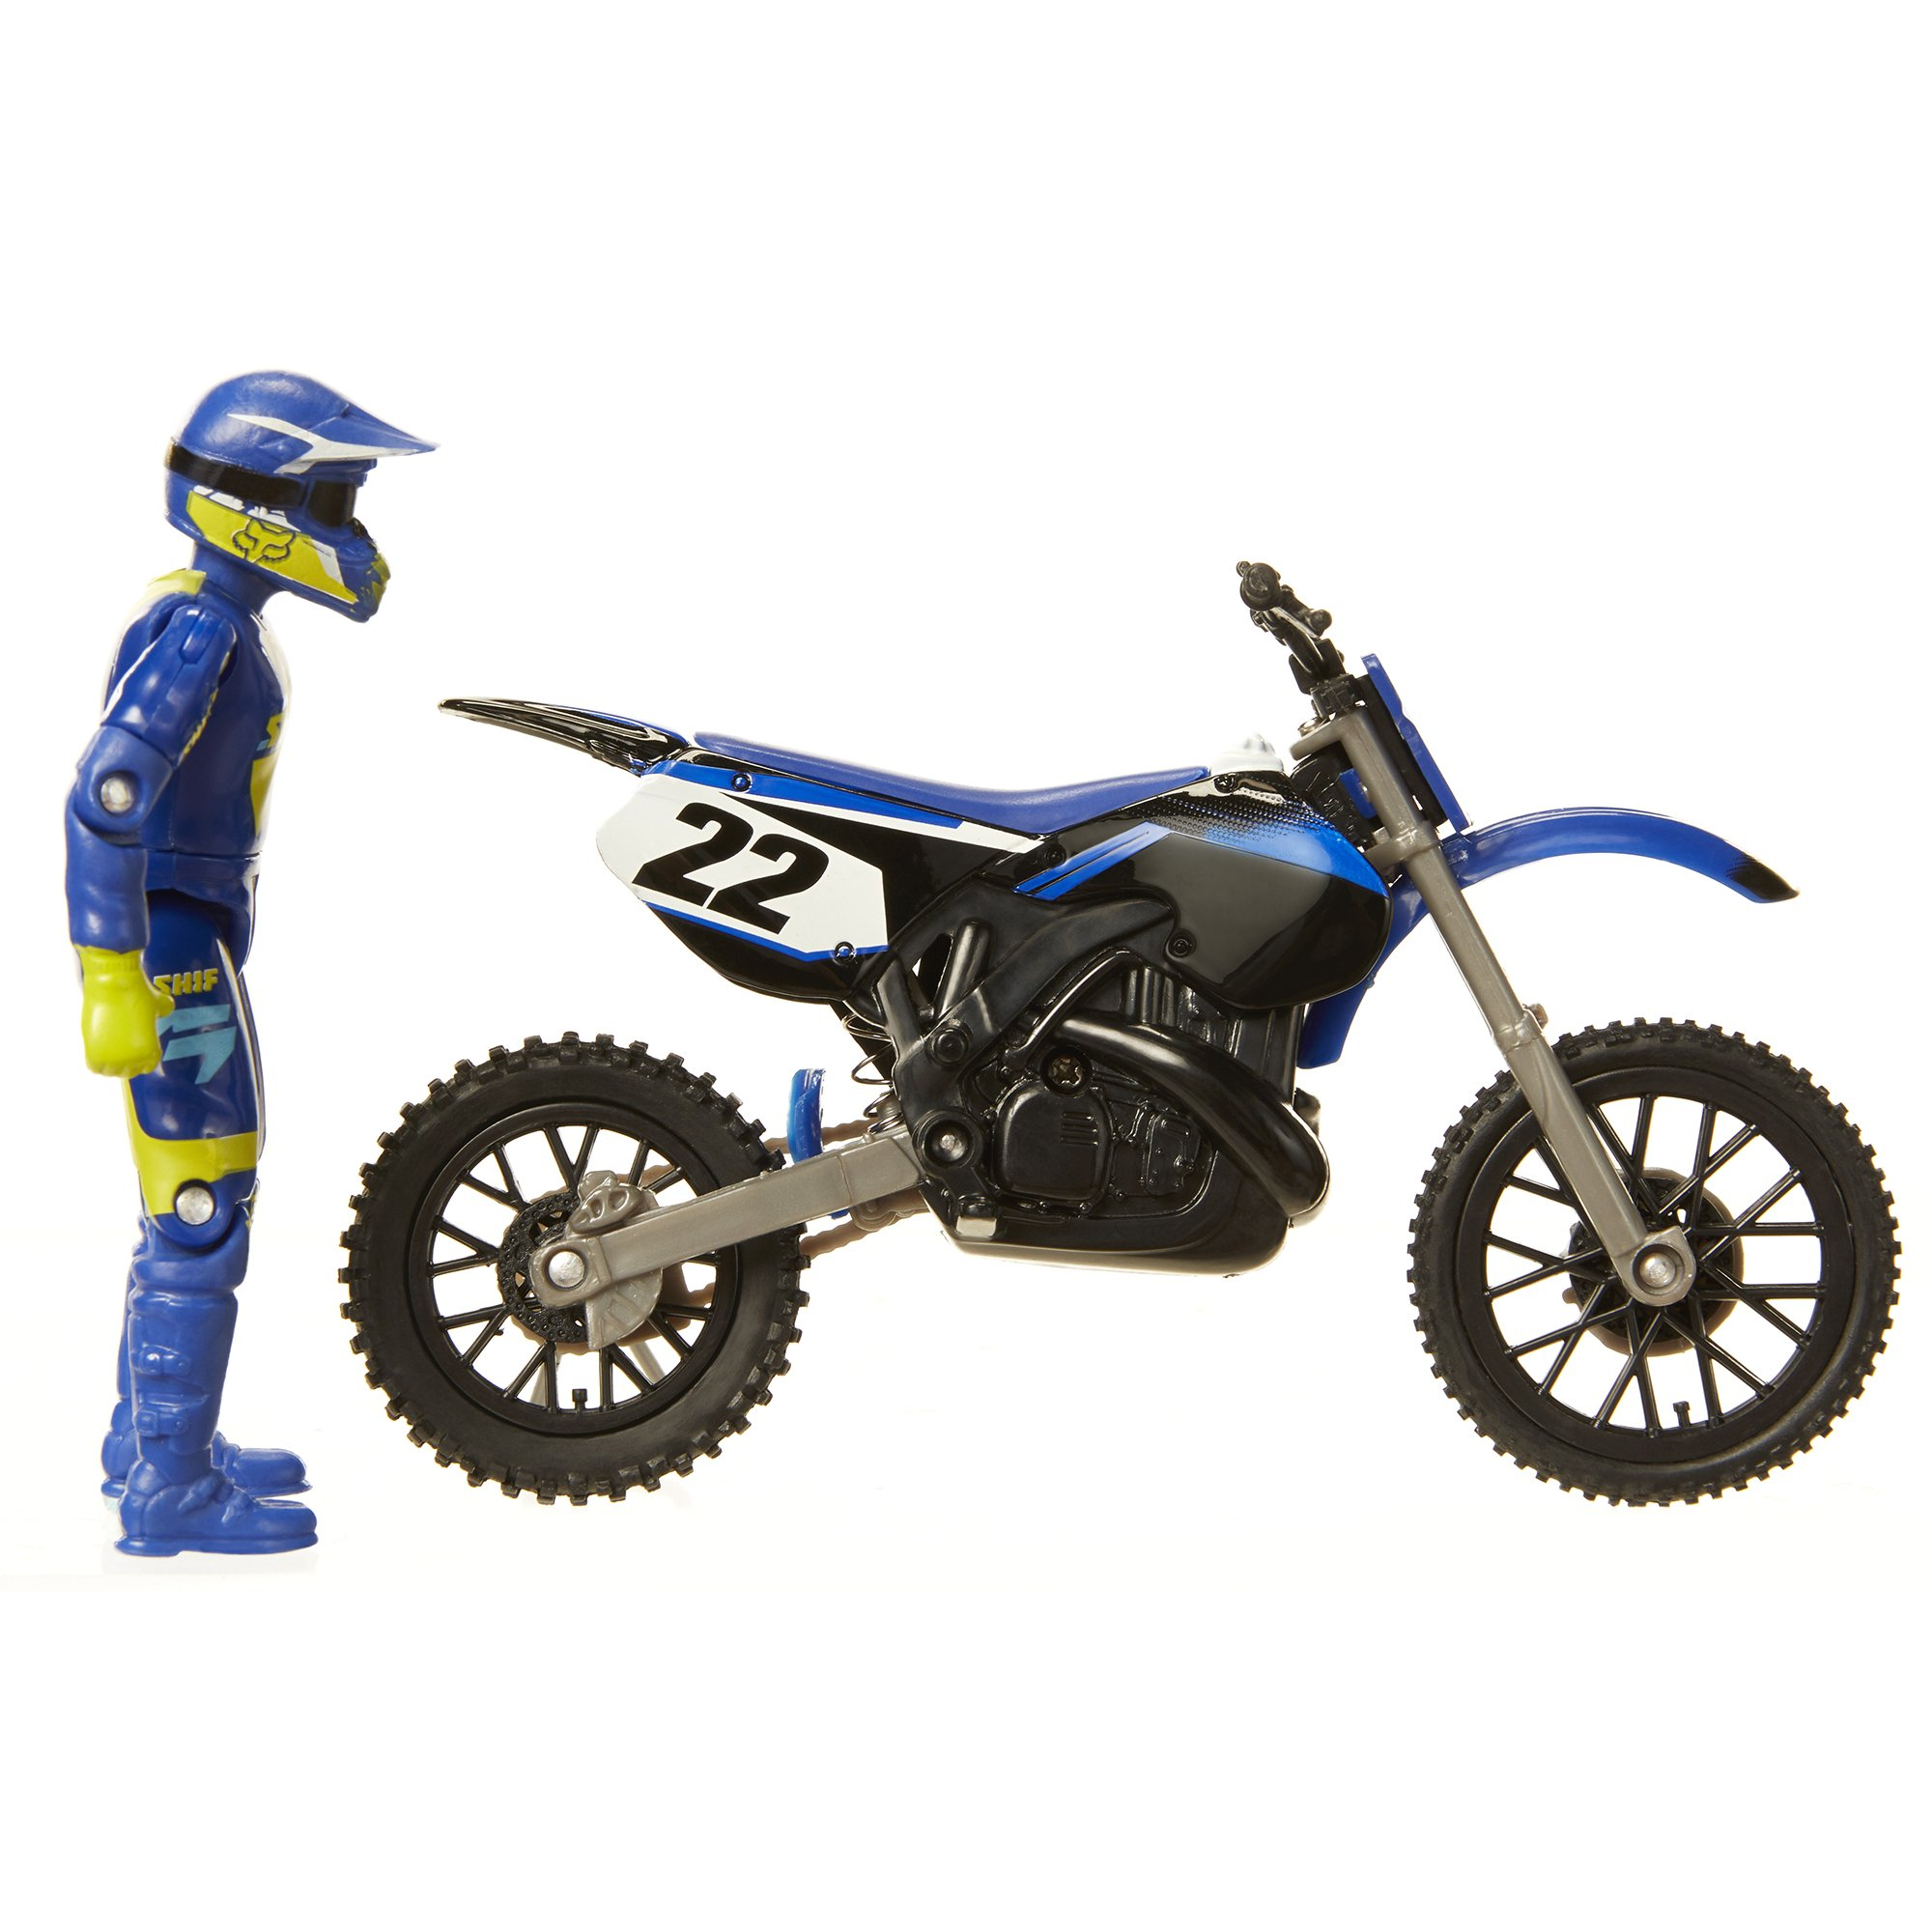 MXS Boys Chad Reed SFX Bike & Rider Set by MXS (Image #4)